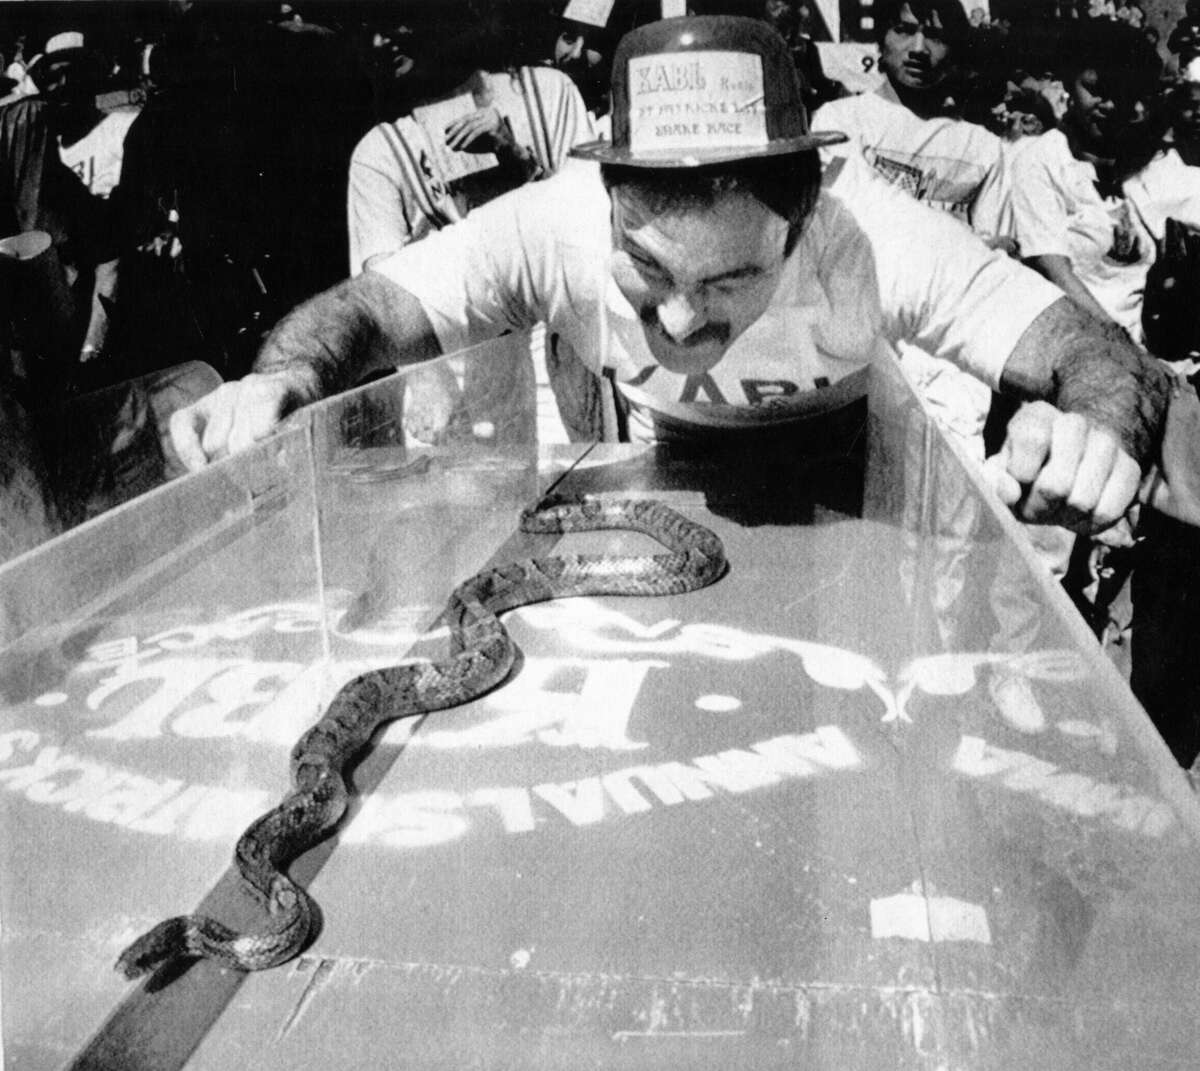 """Snake chaser, Steven Holt of Pacifica, CA cheers on his snake """"Sir Hiss"""" for the title """"Fastest snake in the West"""" during the 20th annual St. Patrick's Day snake race in San Francisco. Undated AP photo, ca. 1970's."""